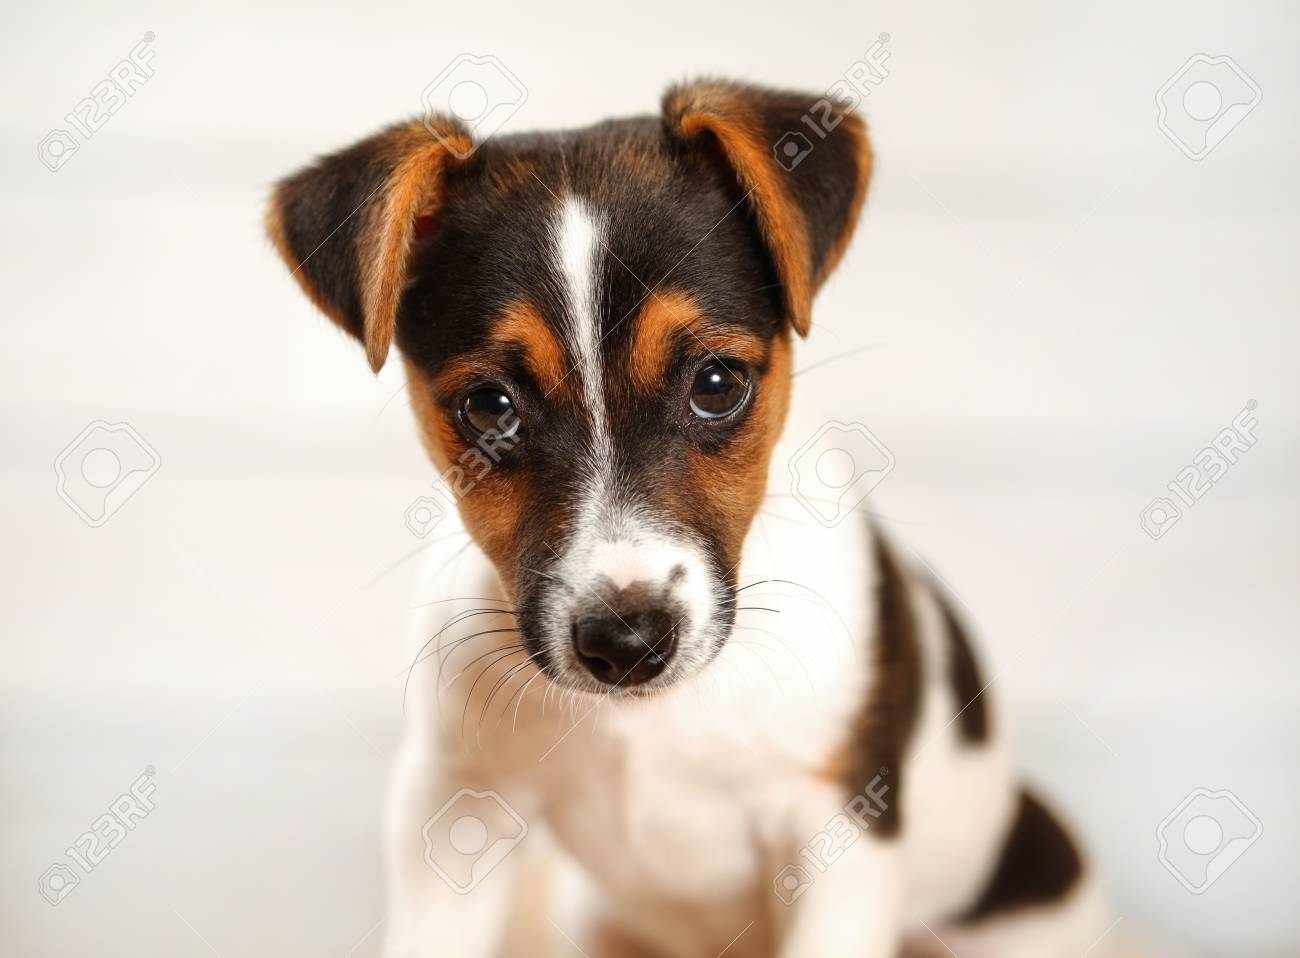 2 months old Jack Russell terrier puppy looking into camera